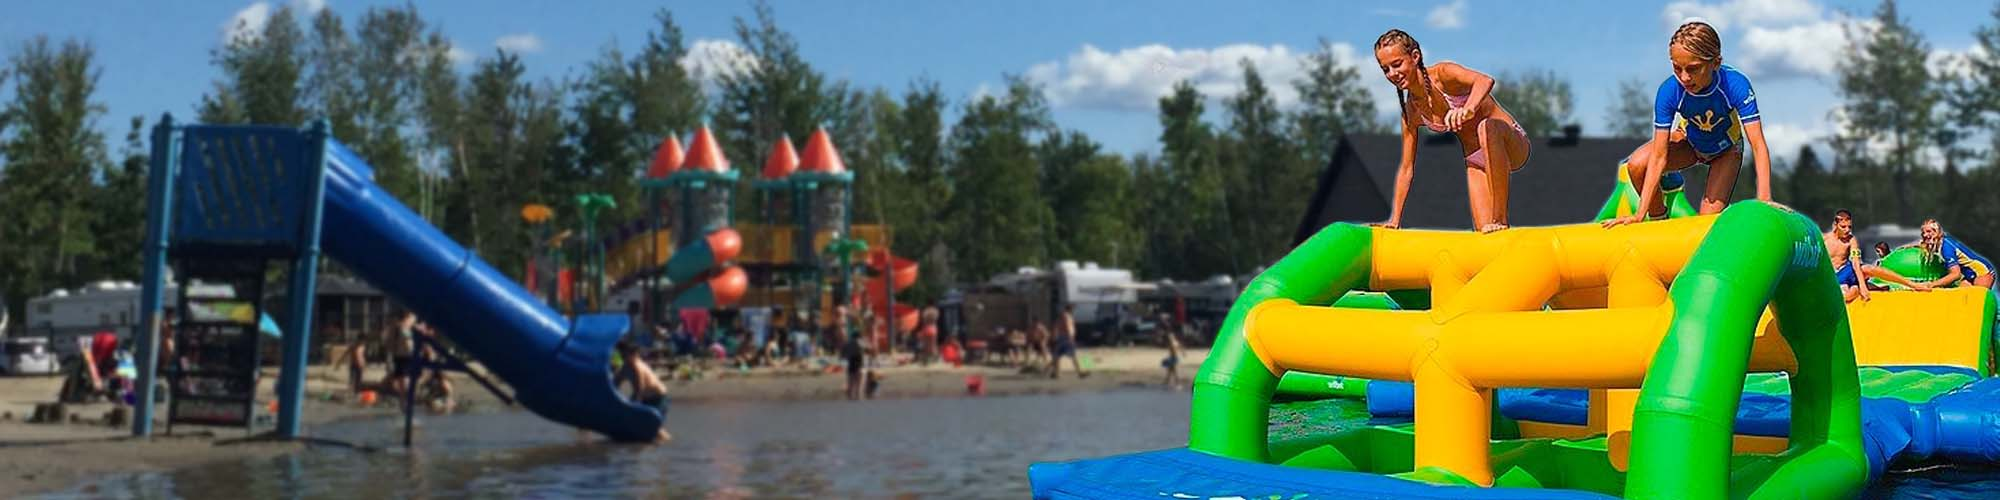 http://www.campingatlantide.com/familycampground//wp-content/uploads/2016/12/wipe-out-parc-aquatique-atlantide.jpg